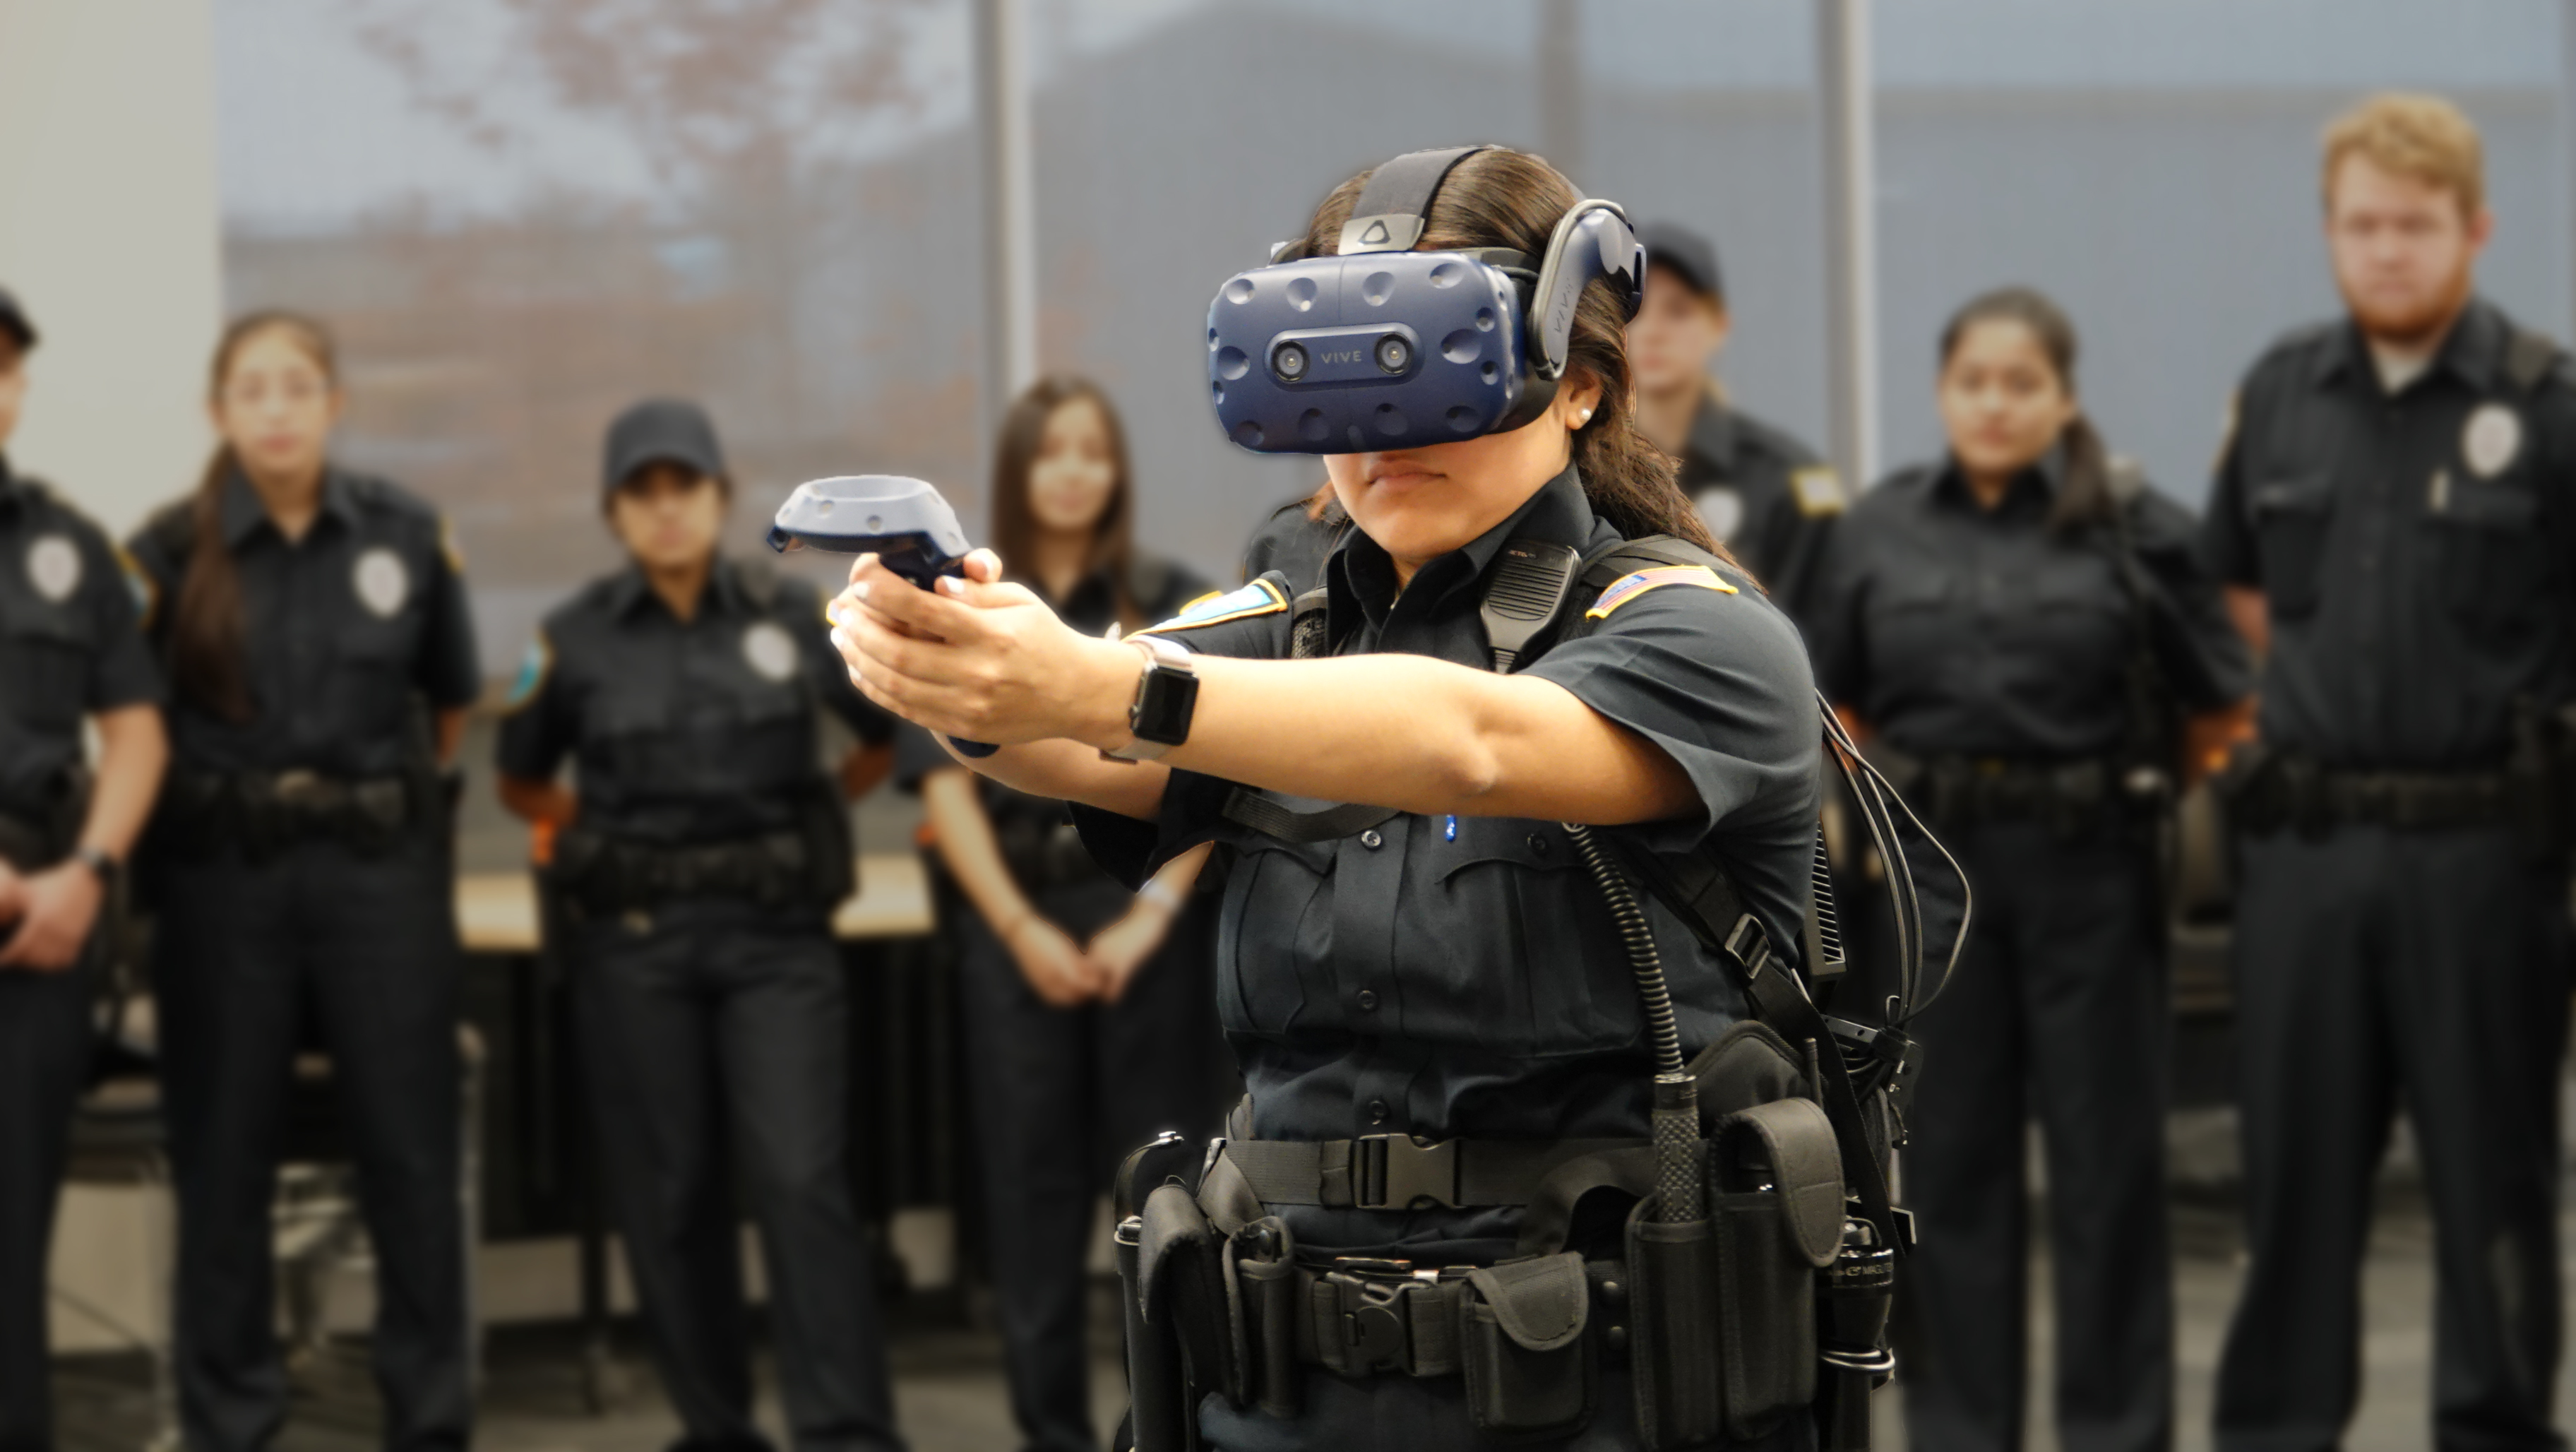 Criminal Justice Students Training Using Apex Officer Virtual Reality Training Platform